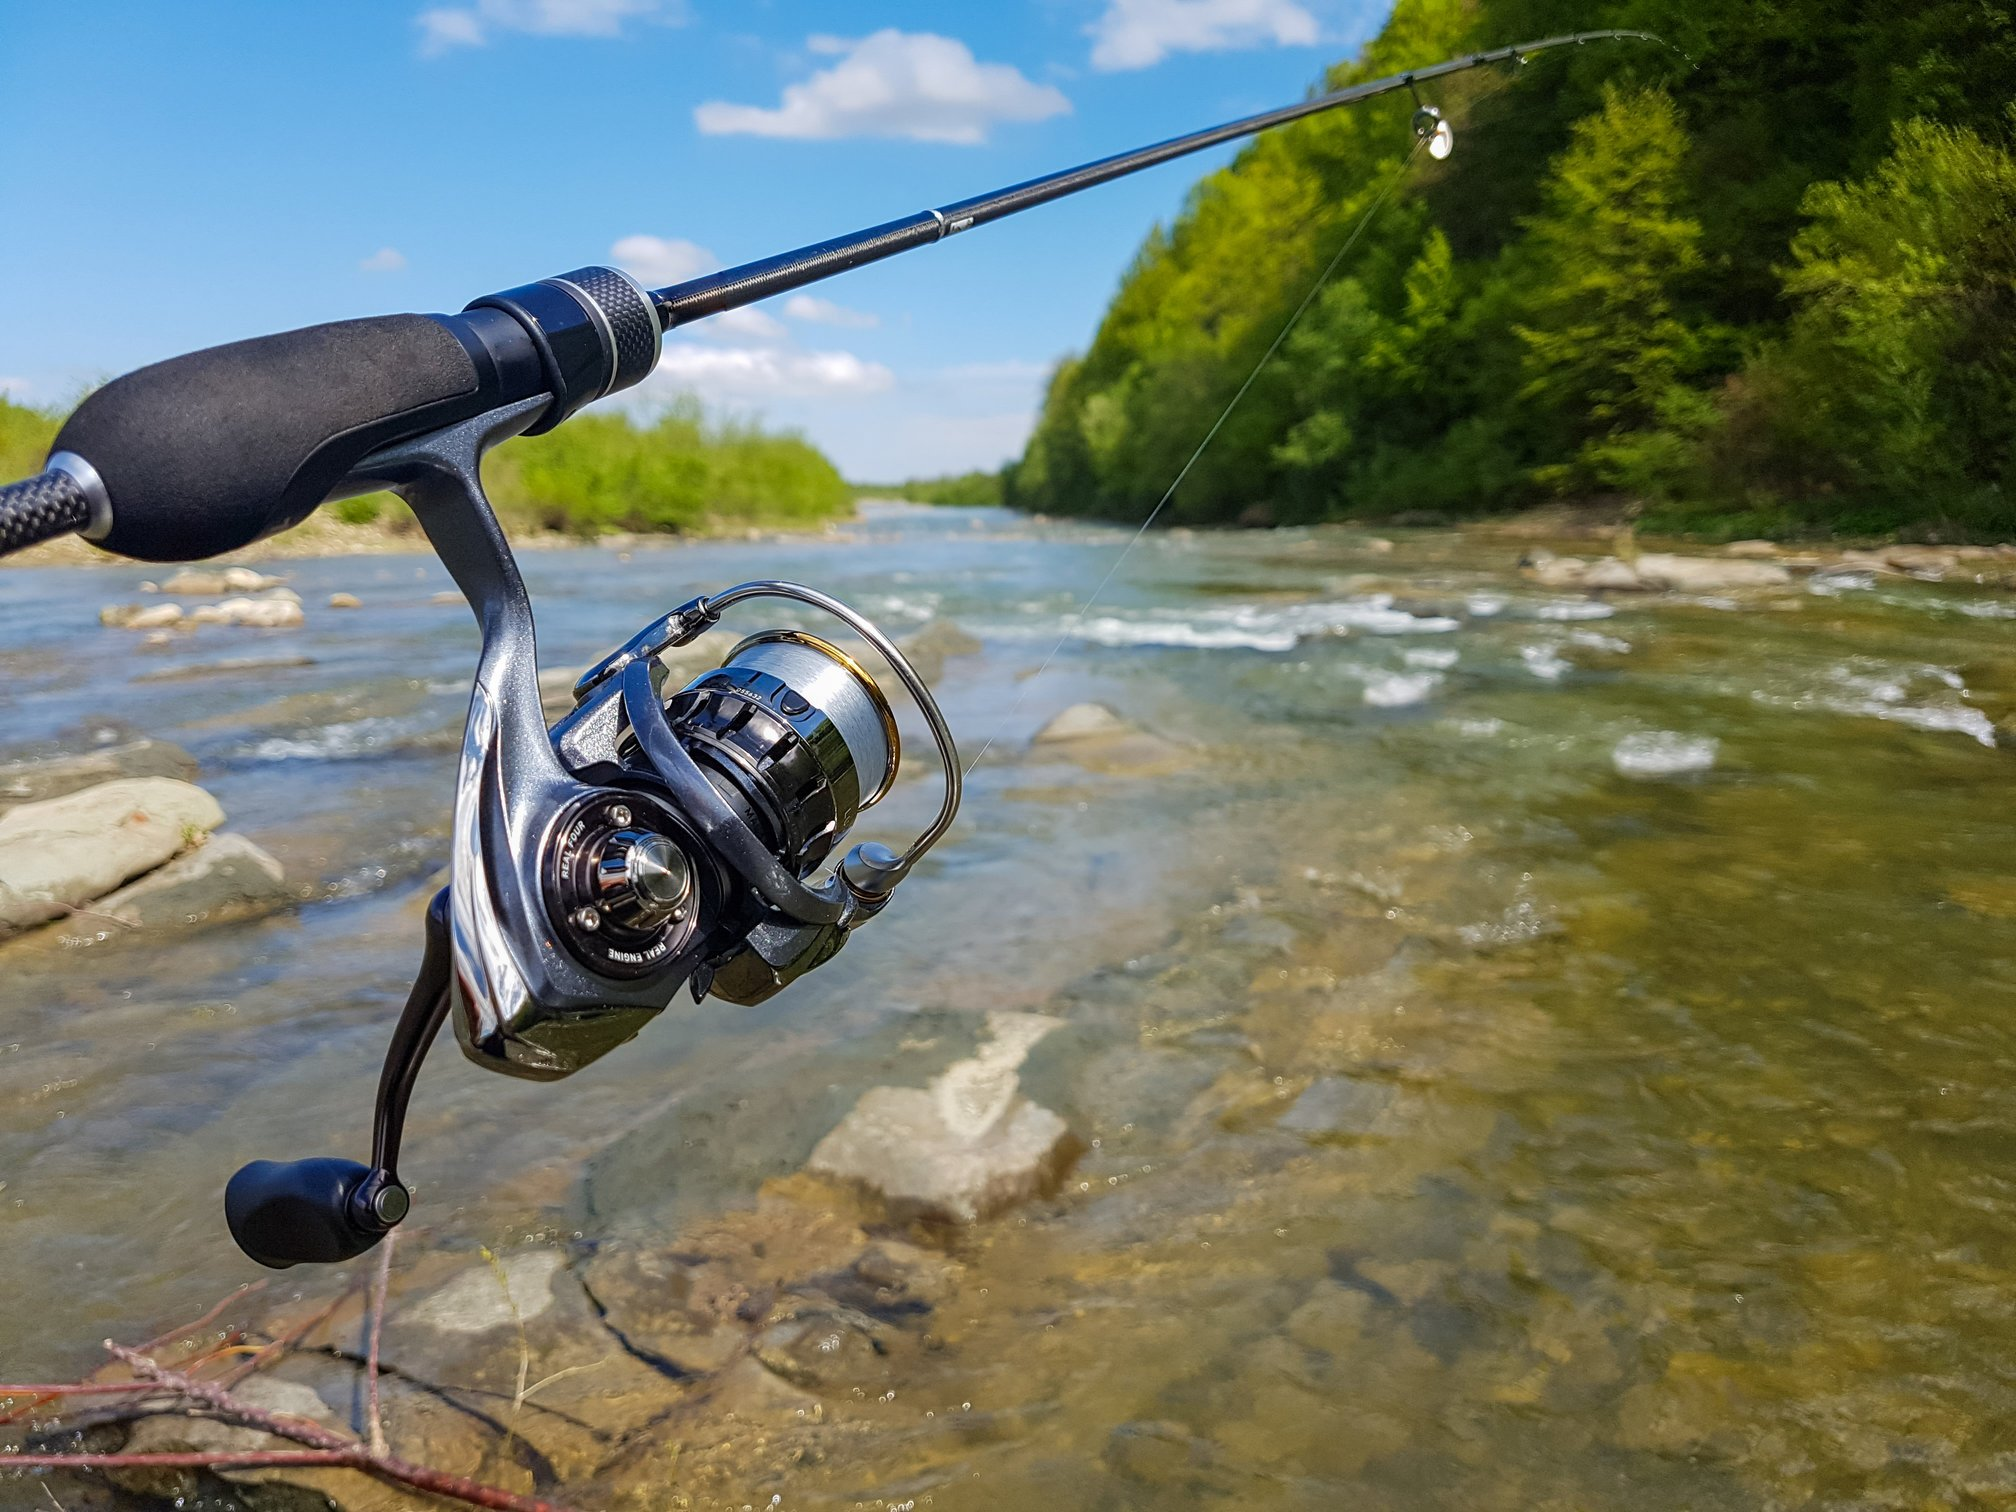 a closeup of a spinning reel on a fishing rod with a river in the background